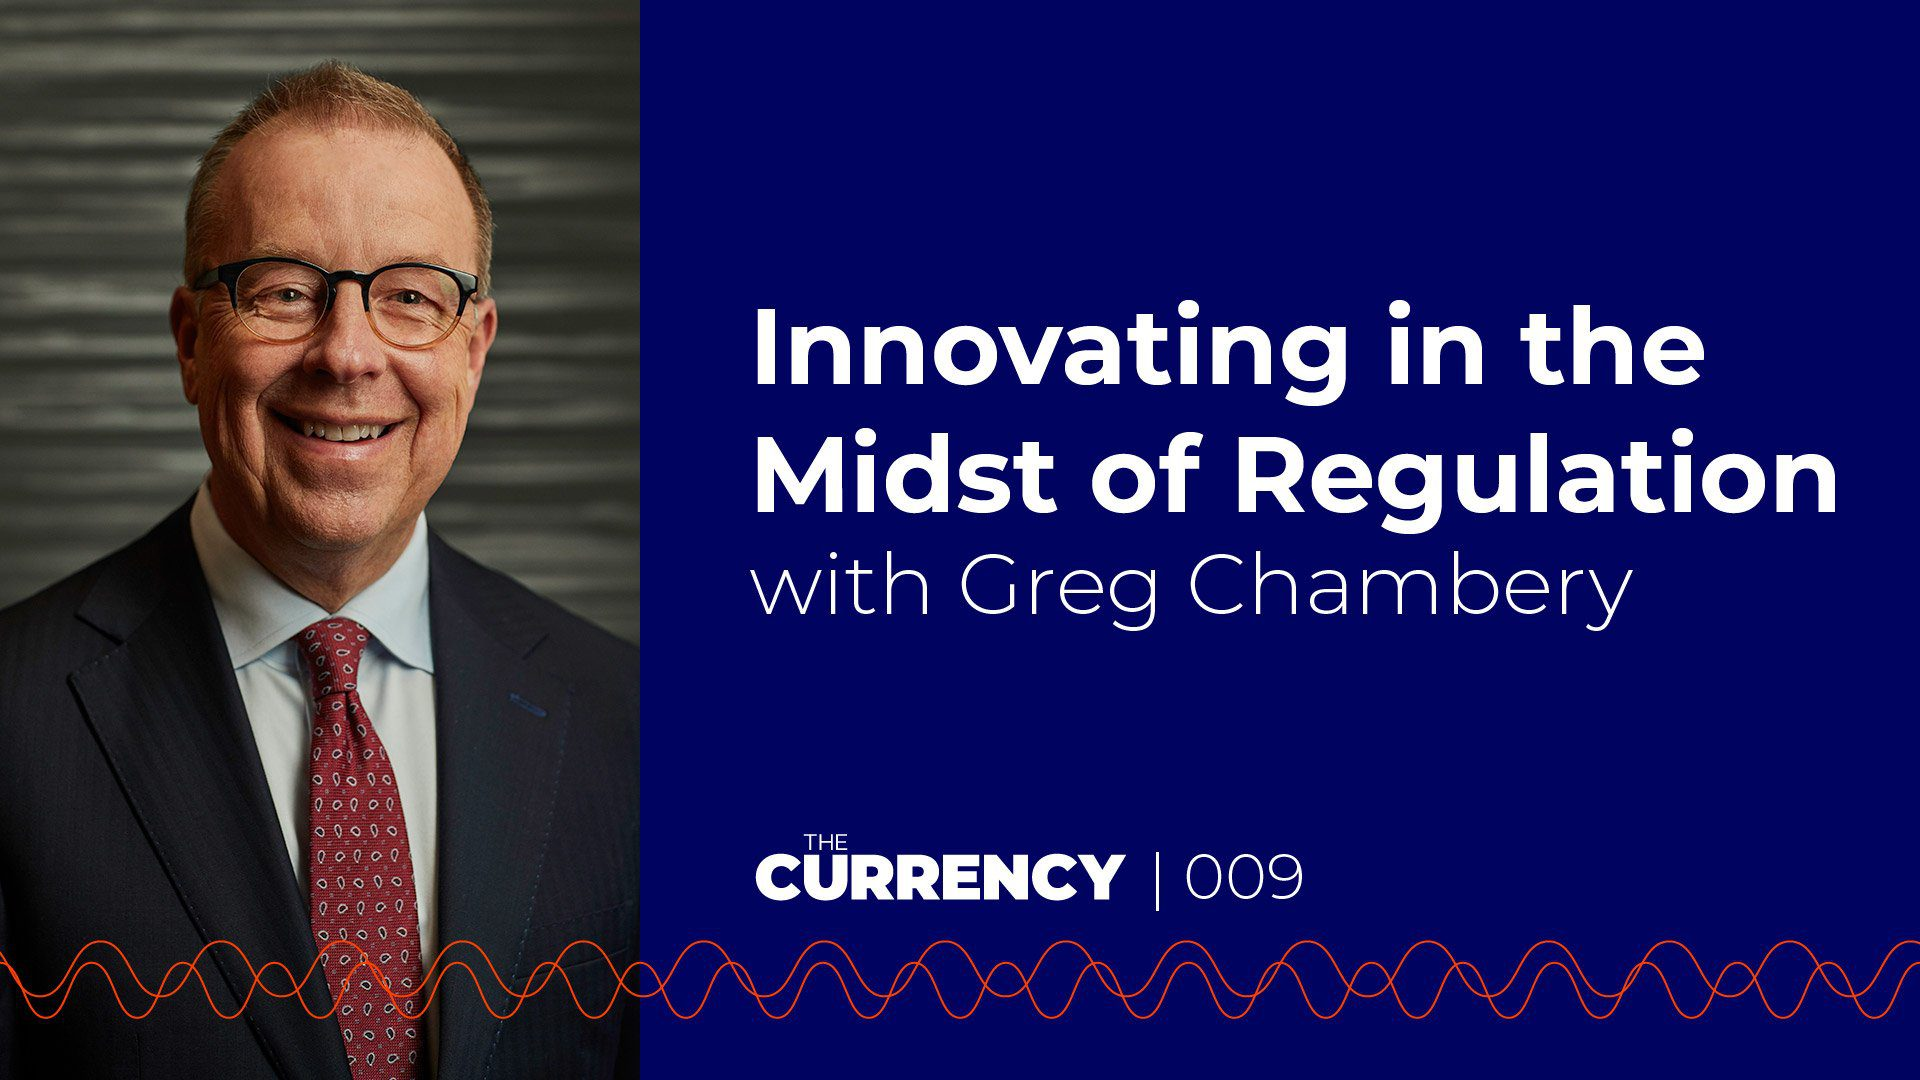 Greg Chambery on The Currency